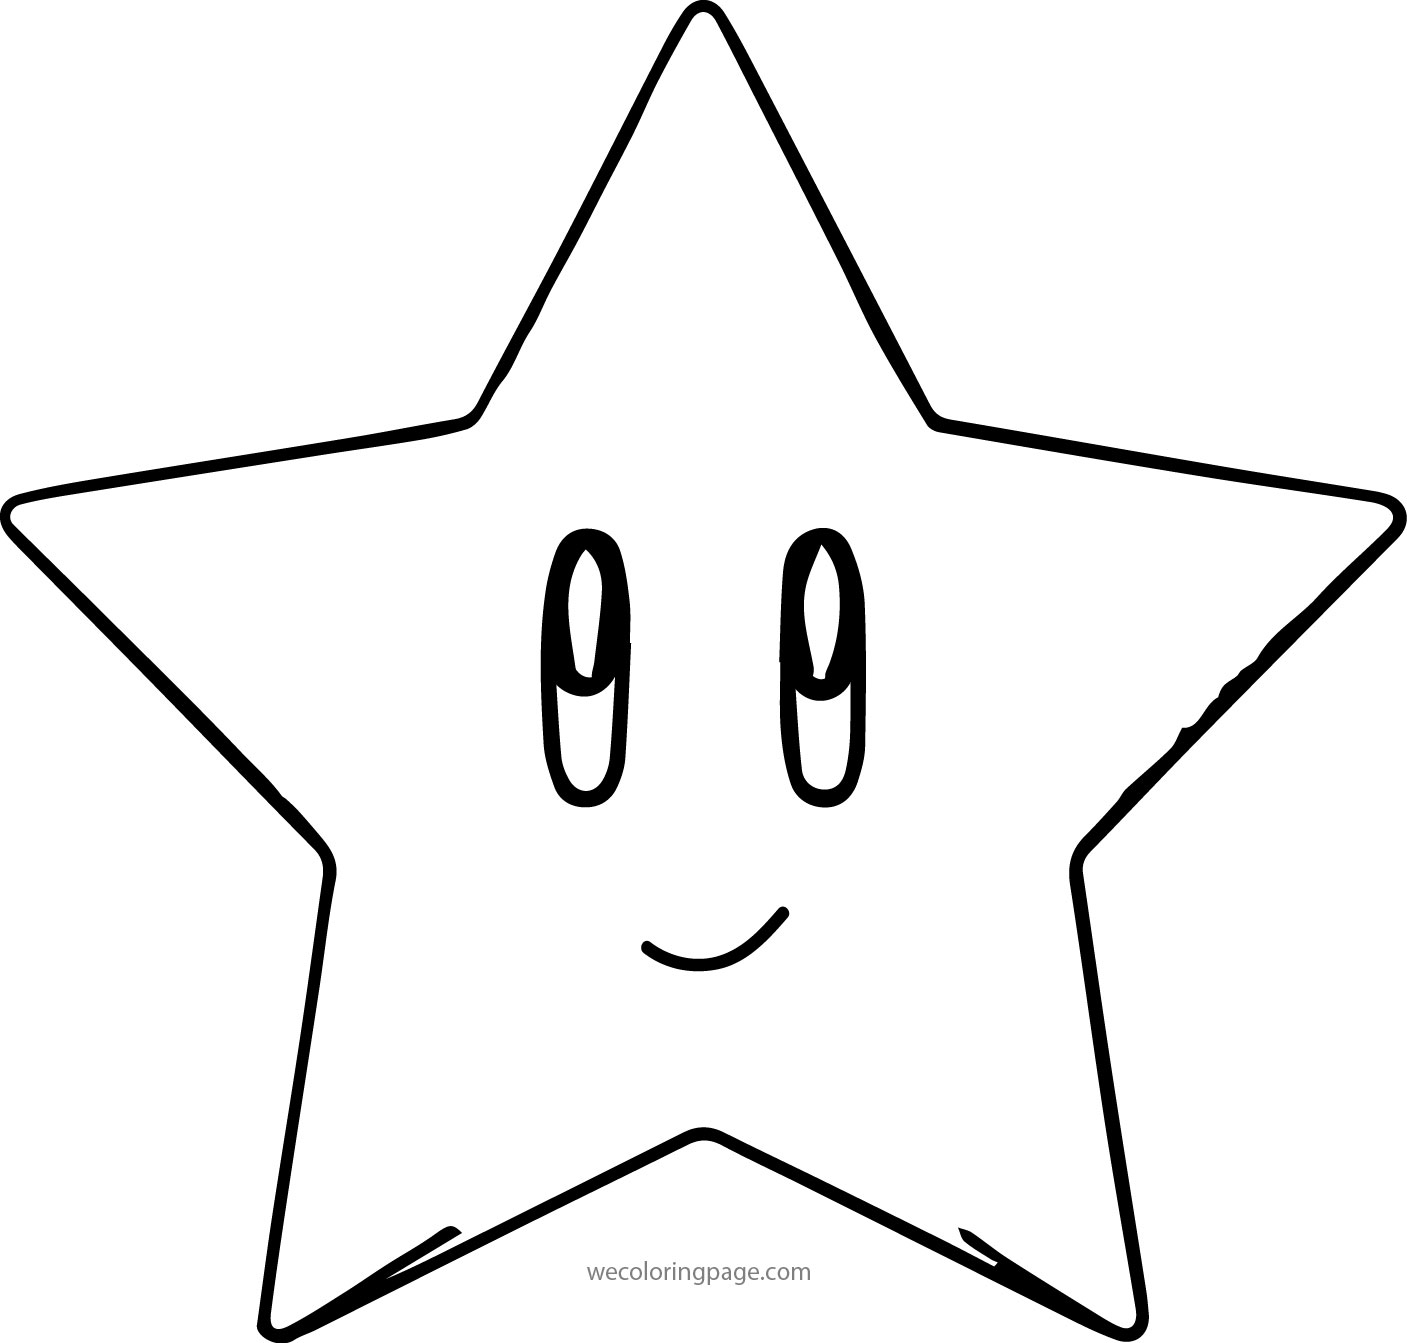 star coloring pages - mario star coloring pages